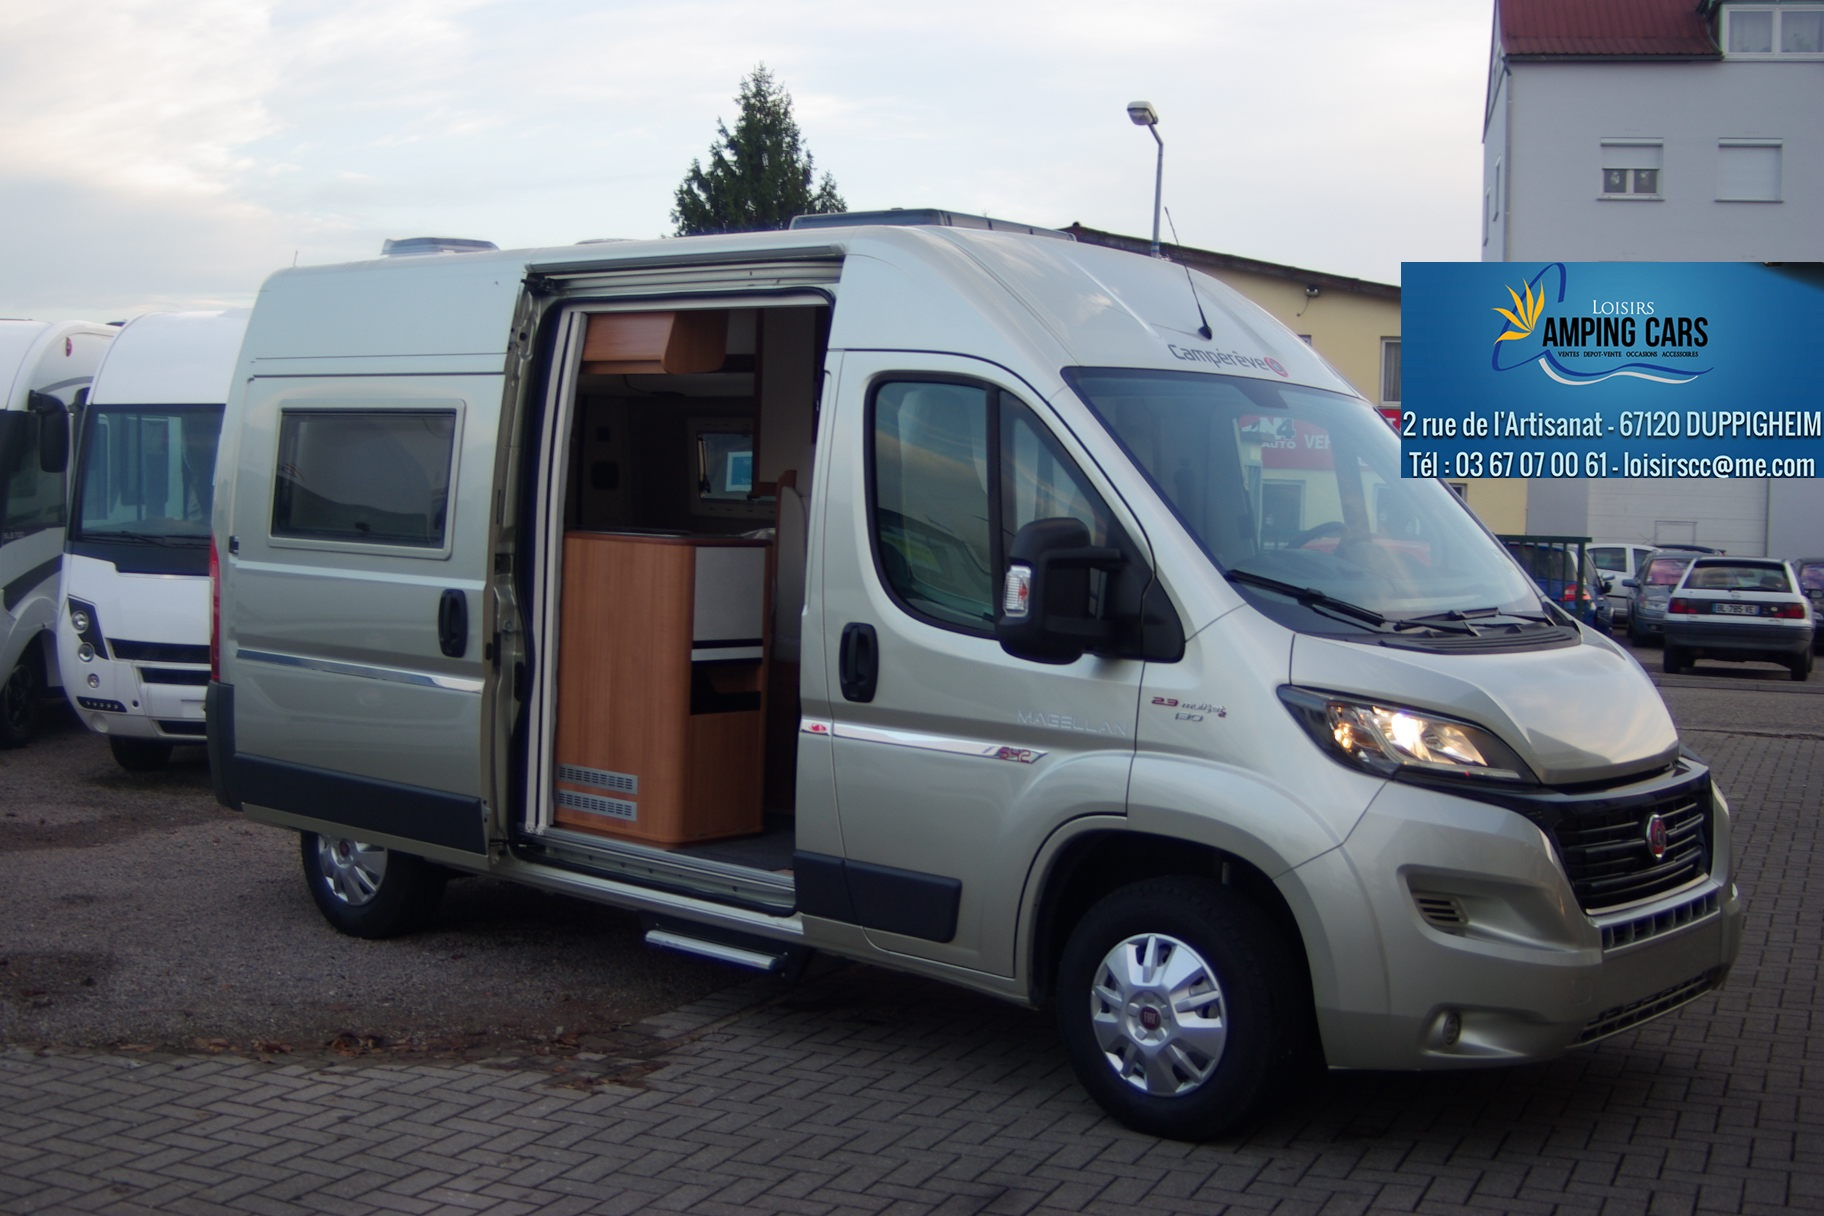 campereve magellan 542 neuf porteur fiat ducato 130cv camping car vendre en rhin 67. Black Bedroom Furniture Sets. Home Design Ideas